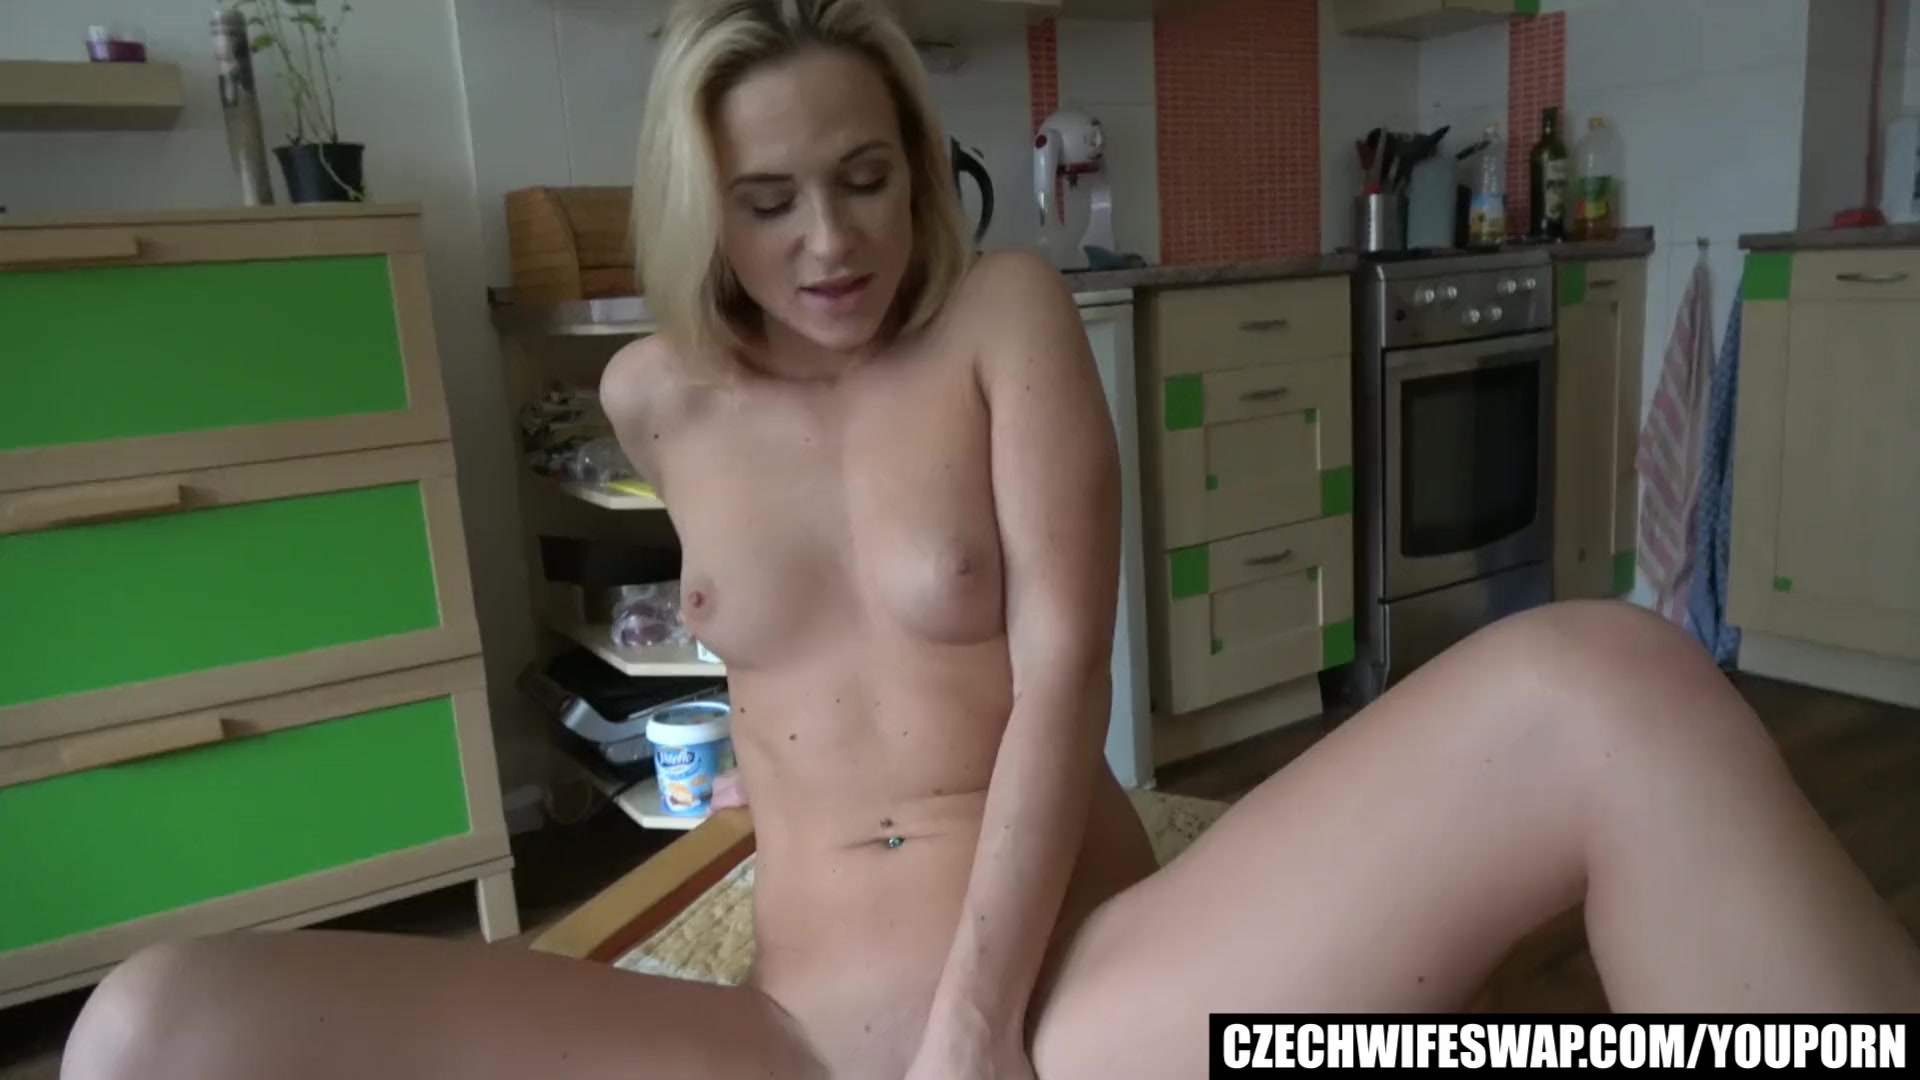 Red tube amature wife swap fuck